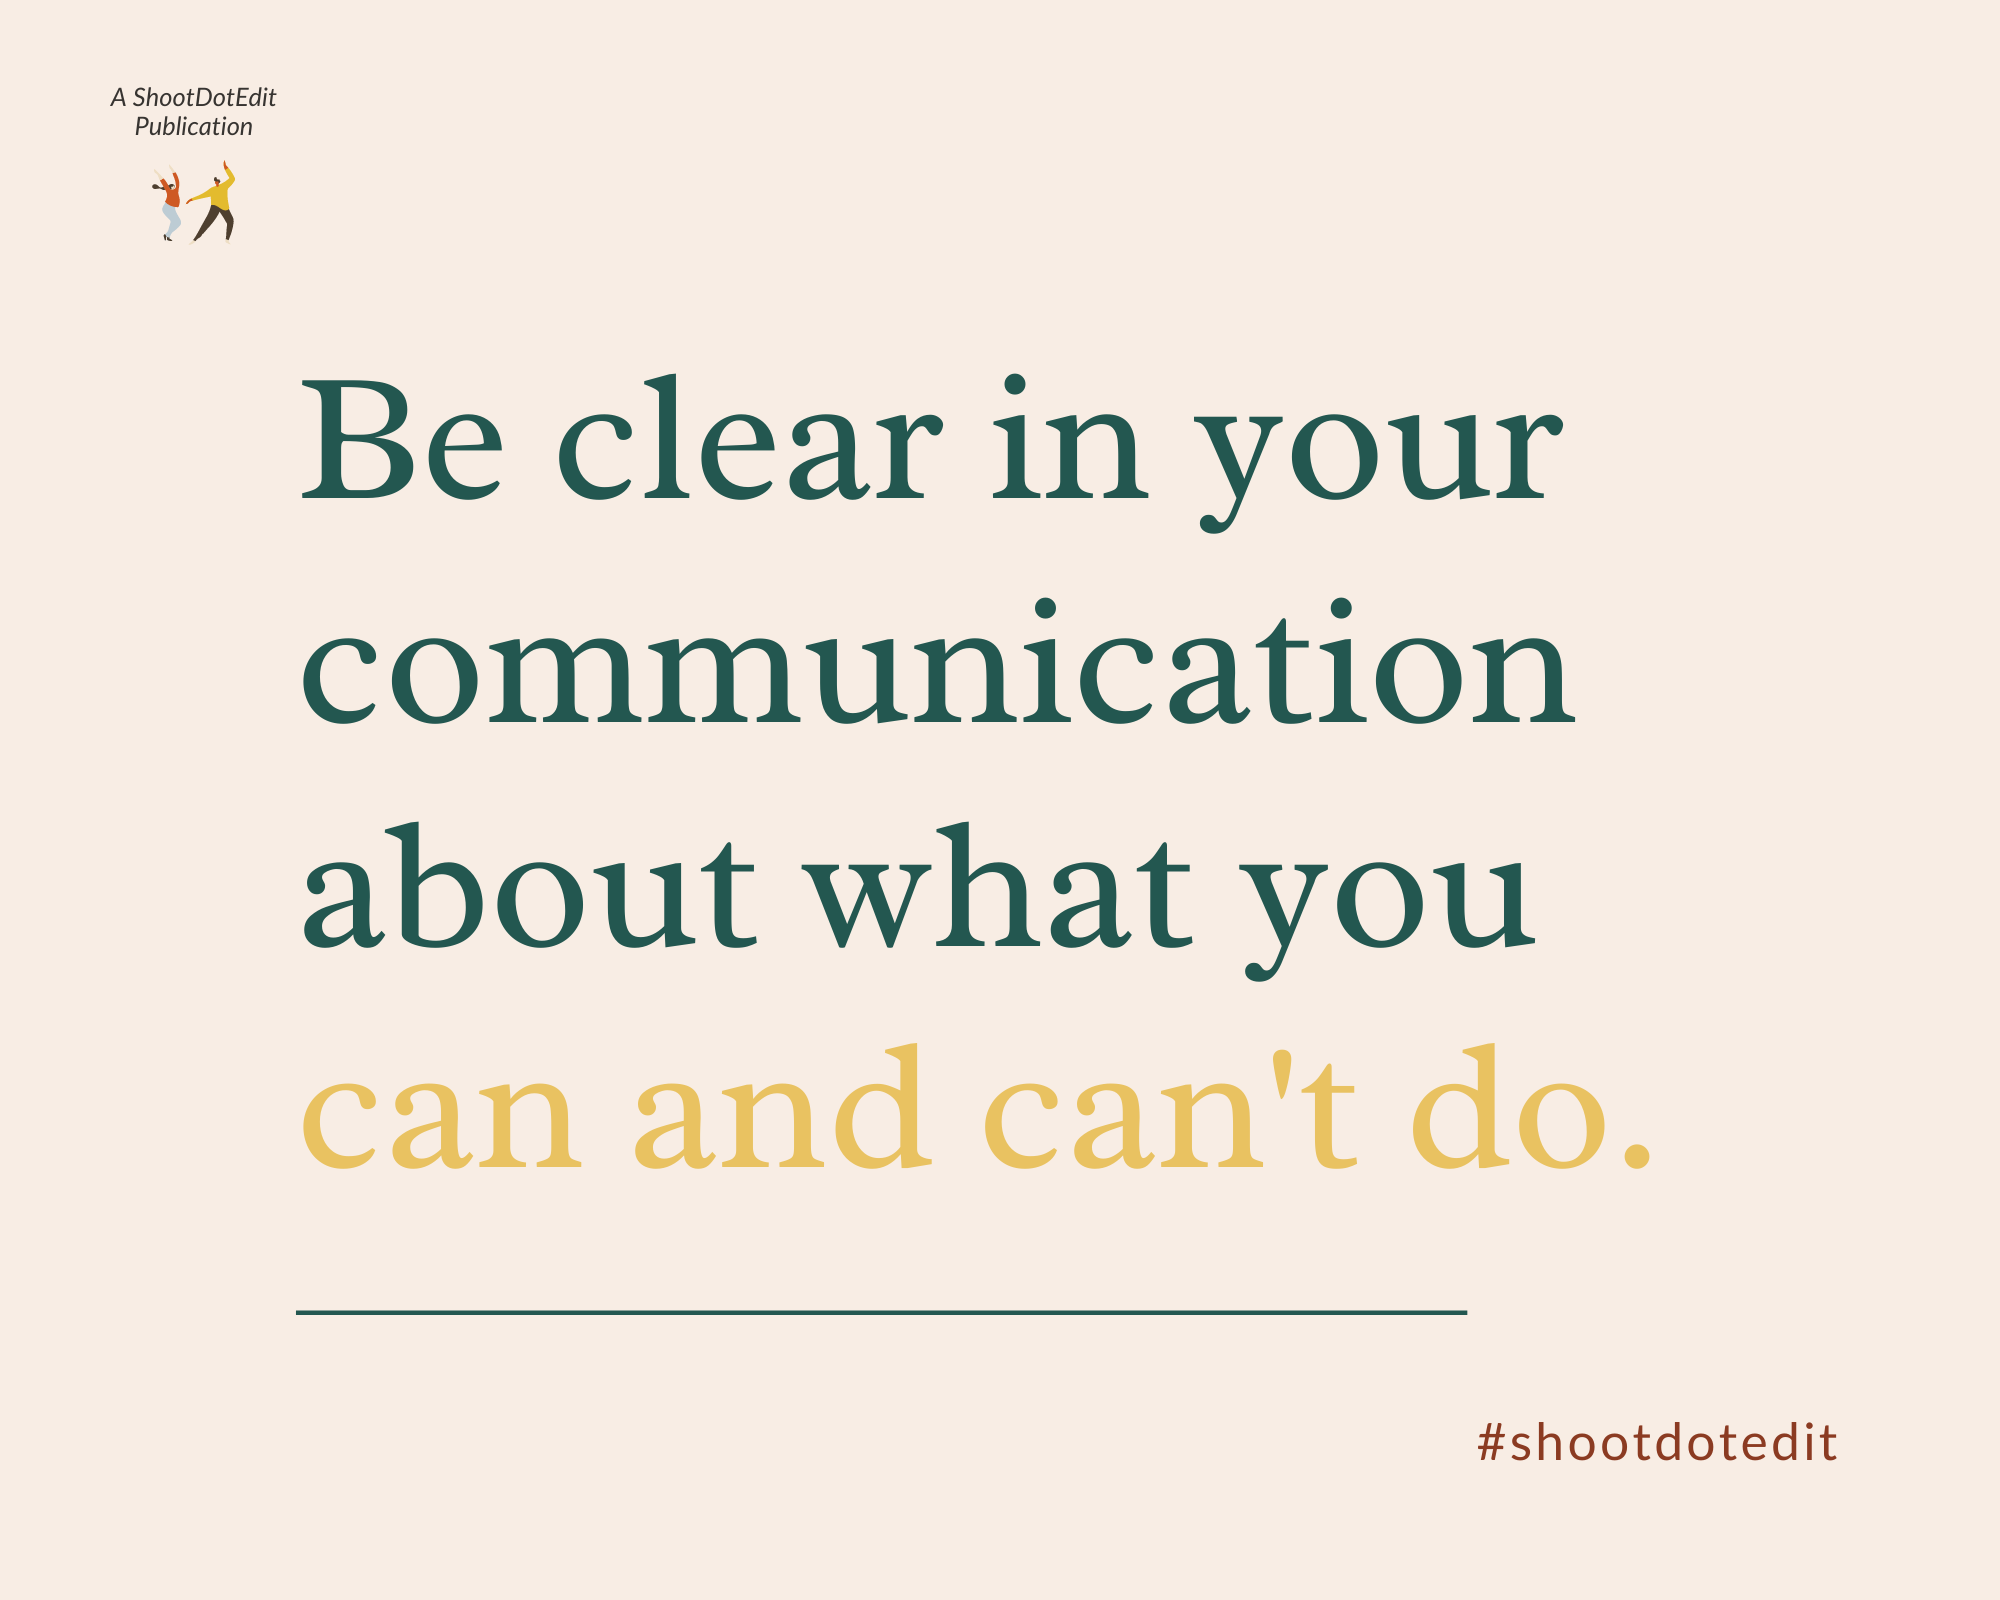 Infographic stating Be clear in your communication about what you can and can't do